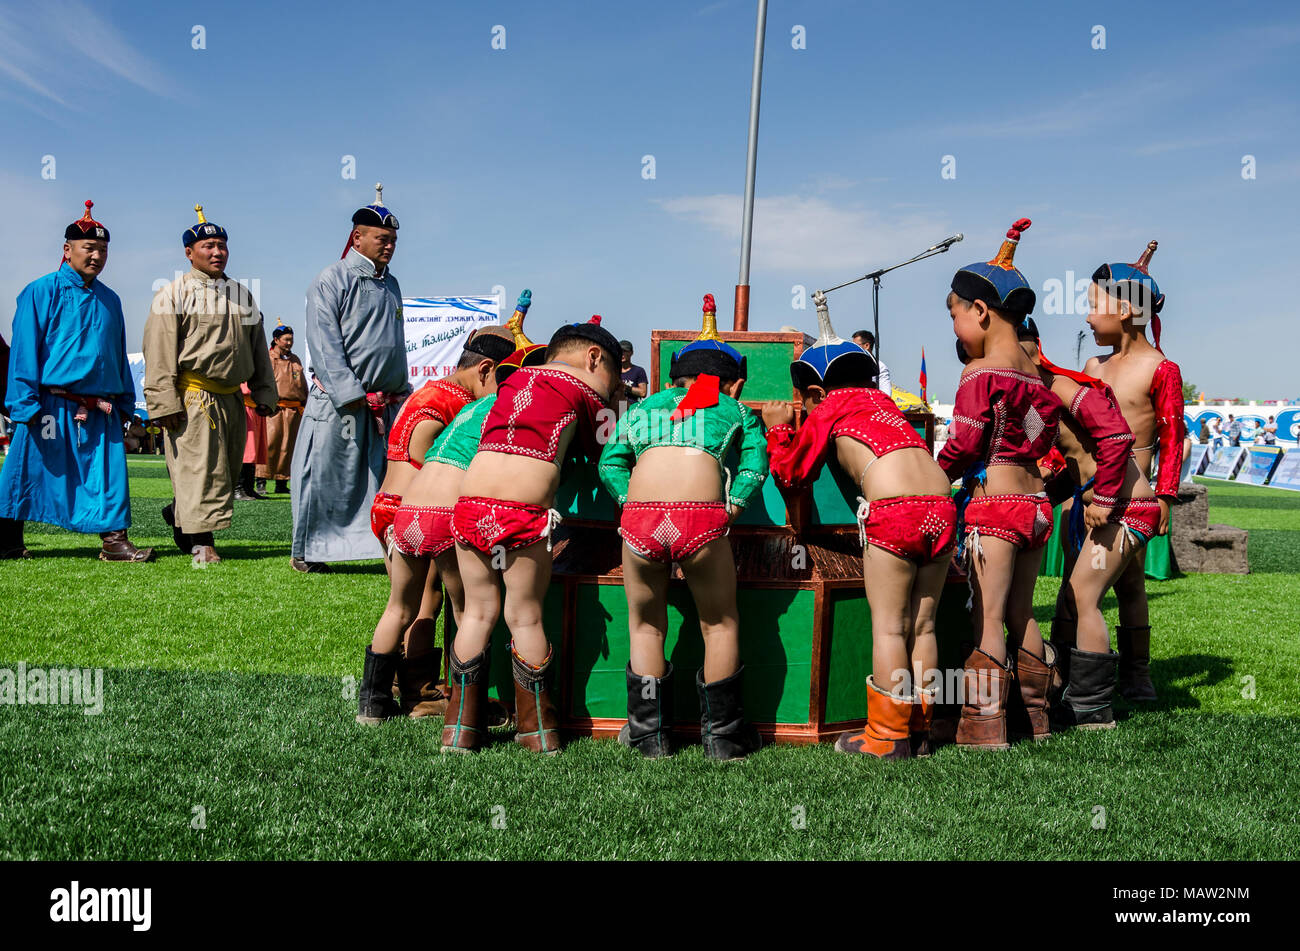 Young Wrestlers at the Opening Ceremony of the Naadam Festival in Murun, Mongolia - Stock Image